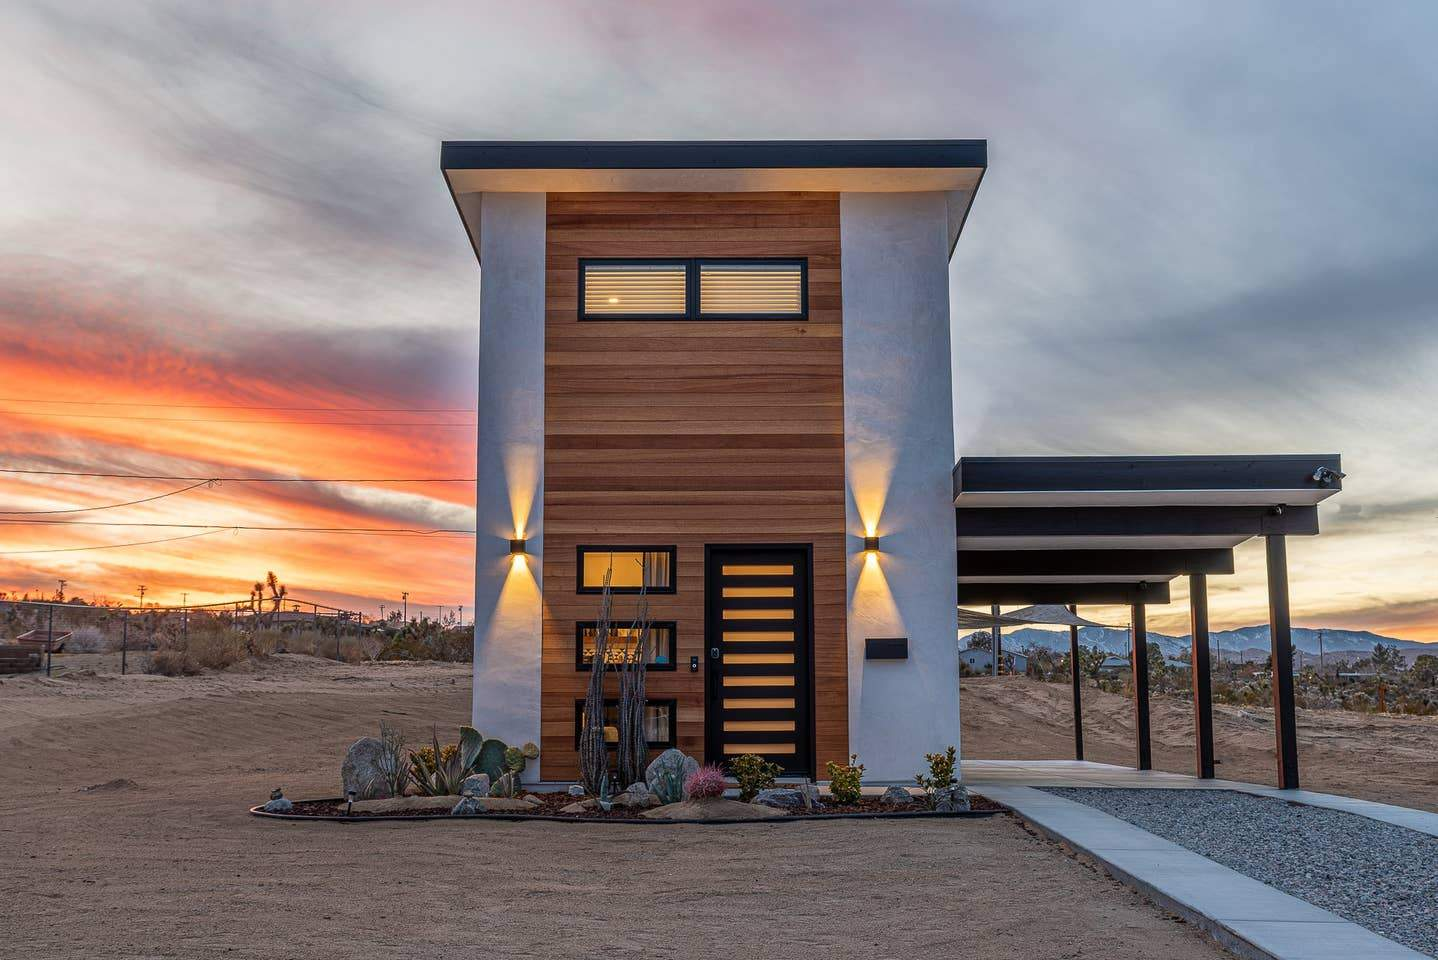 20 Tiny Houses in California You Can Rent on Airbnb in 2021!